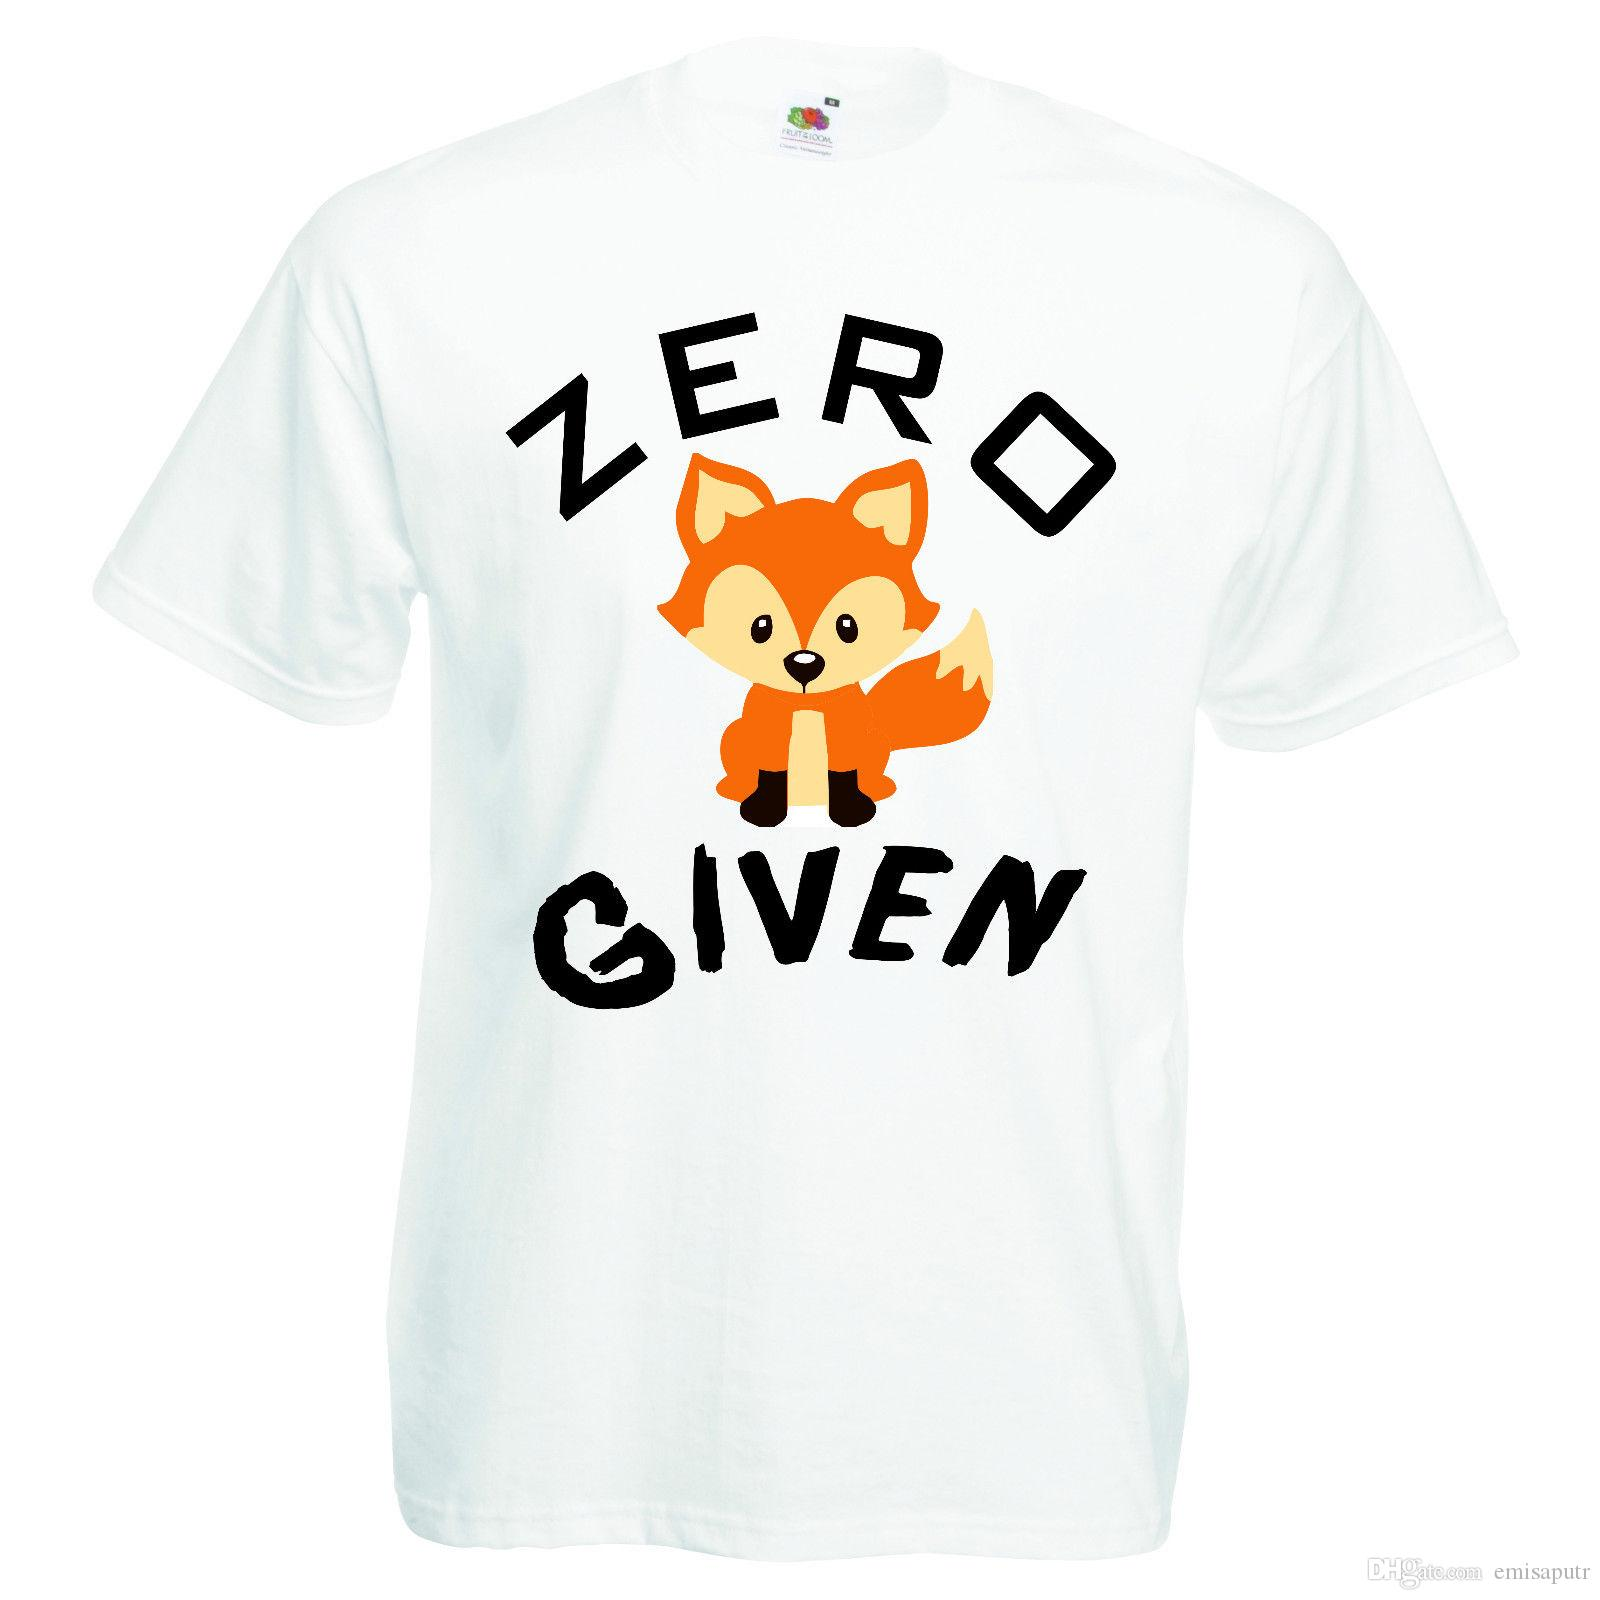 4bfdc1a4b Zero Fox Given Quote Funny Printed T Shirt Shirt Online Cartoon T Shirts  From Emisaputr, $10.76| DHgate.Com